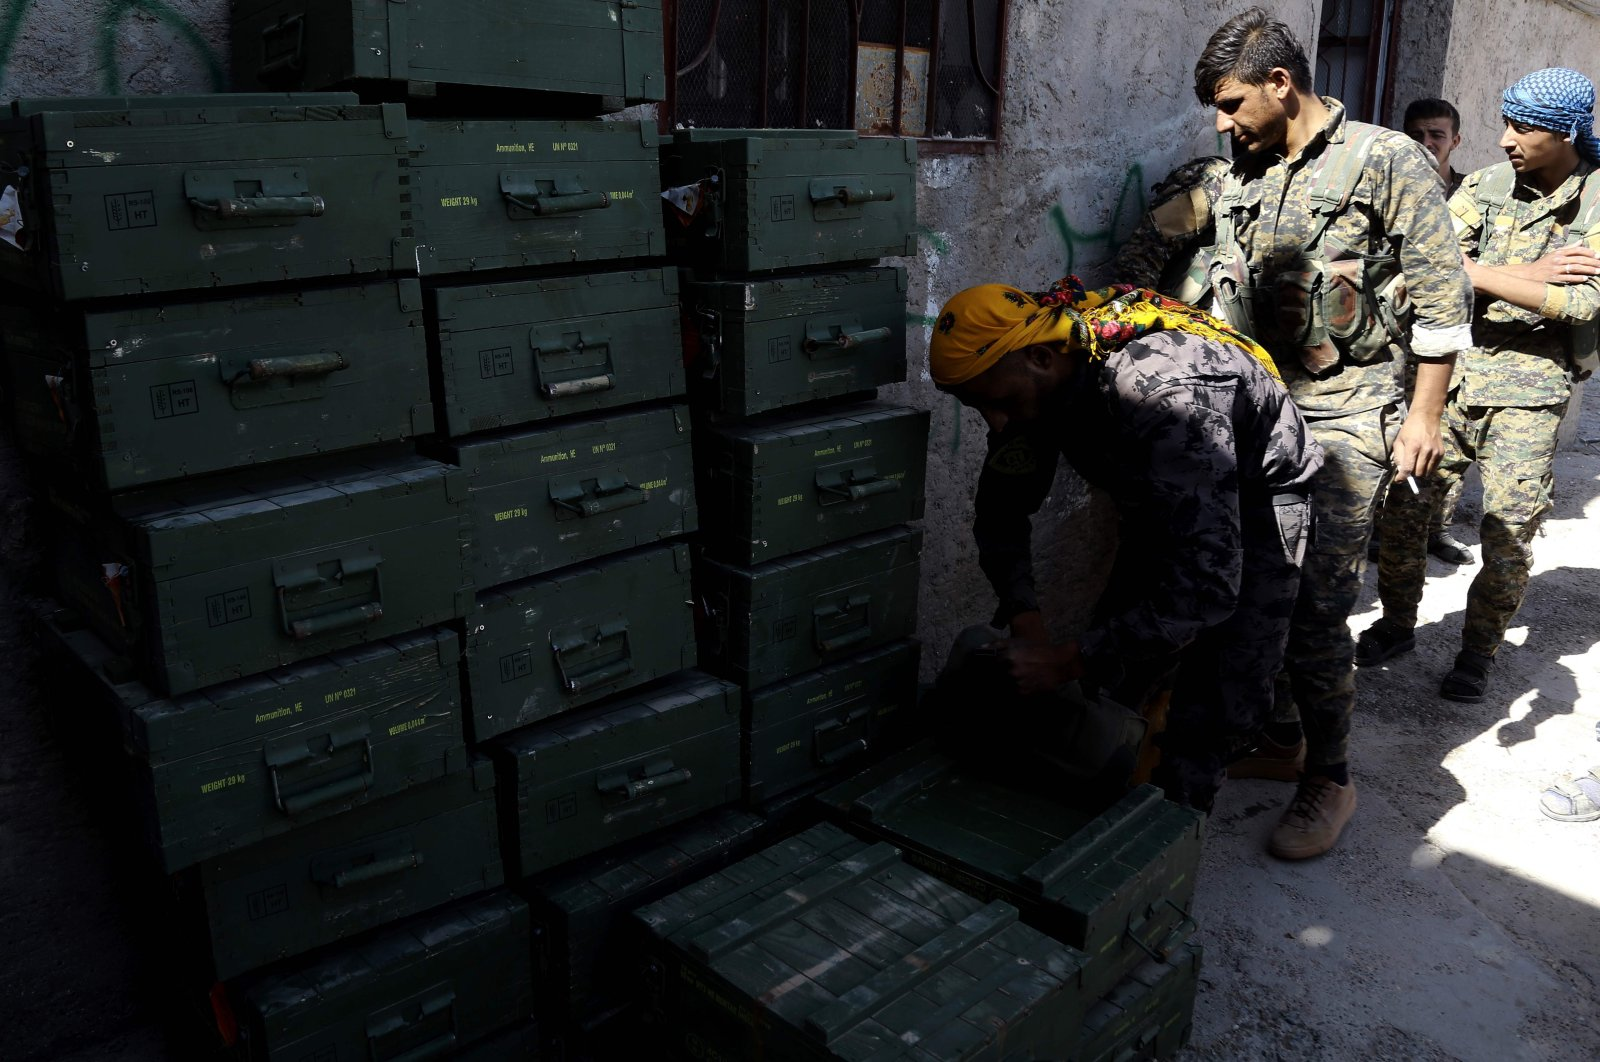 YPG members unload boxes of ammunition supplied by the U.S.-led coalition forces near Raqqa, Syria, June 7, 2017. (AFP Photo)